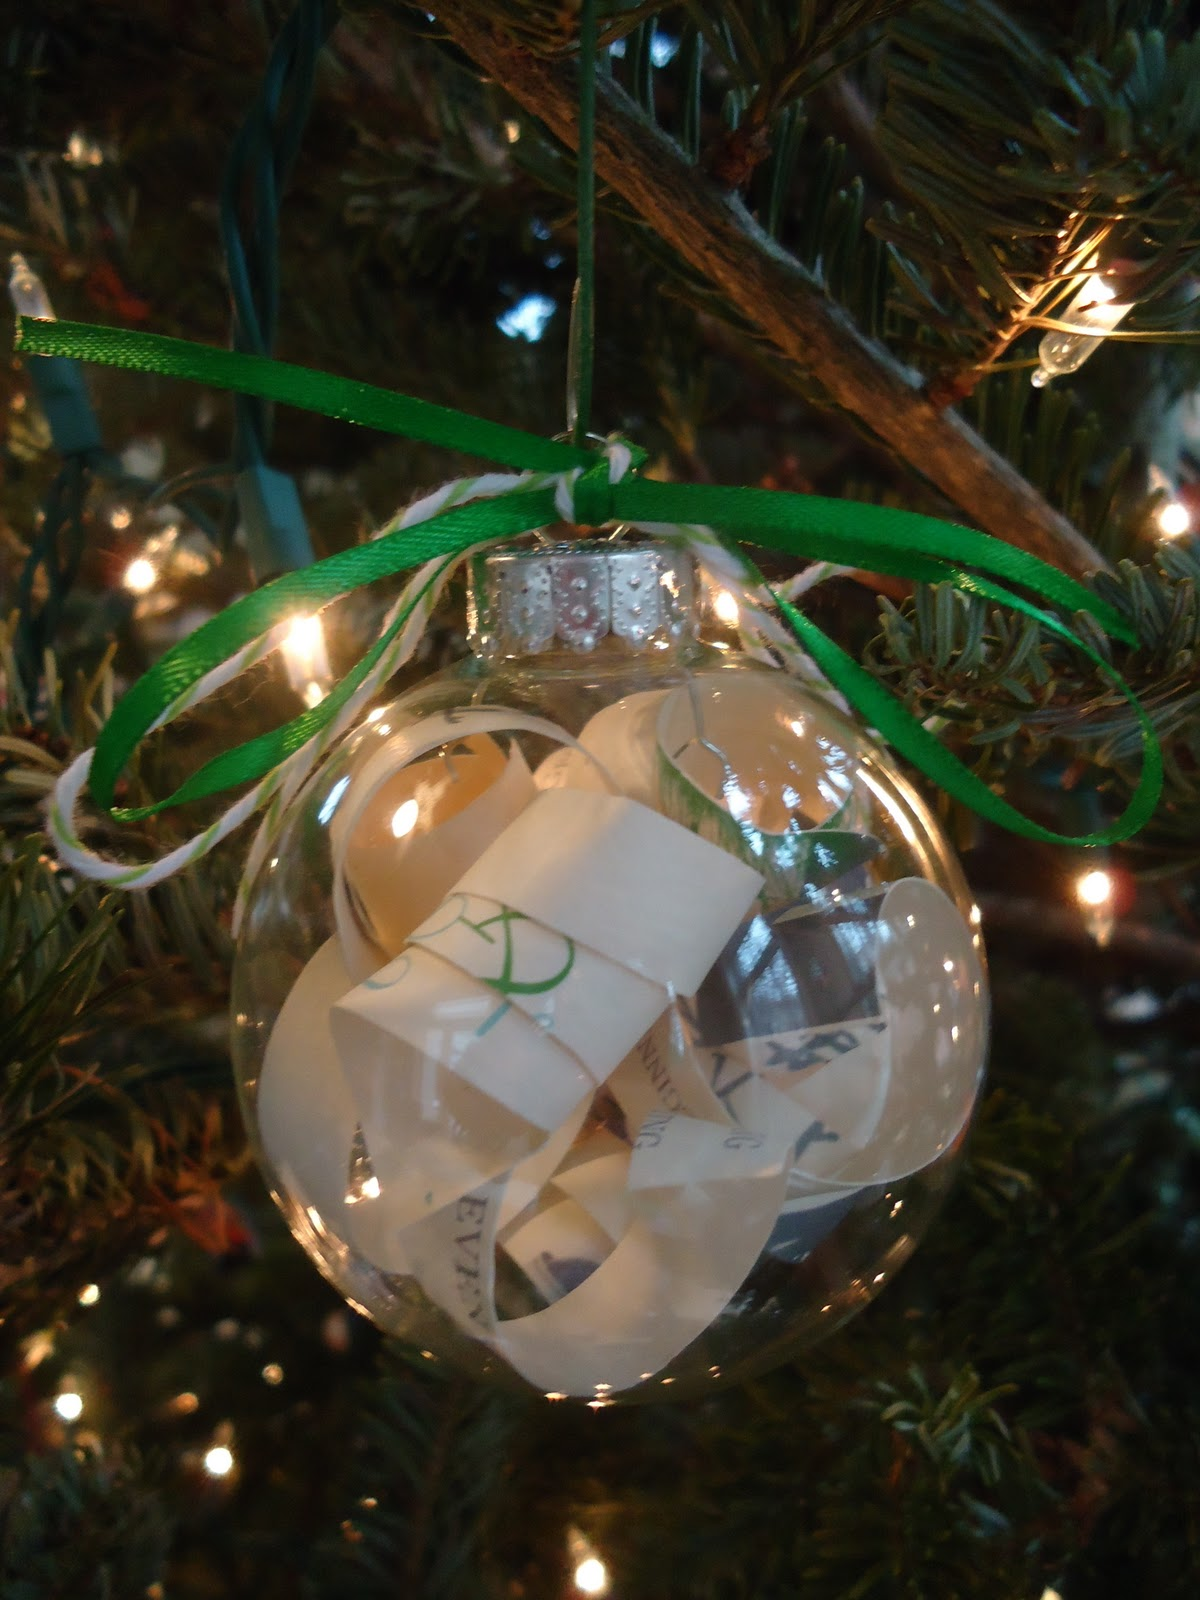 First christmas as a married couple ornament - From My Sister To Commemorate Our First Christmas Together As A Married Couple Tutorial Here